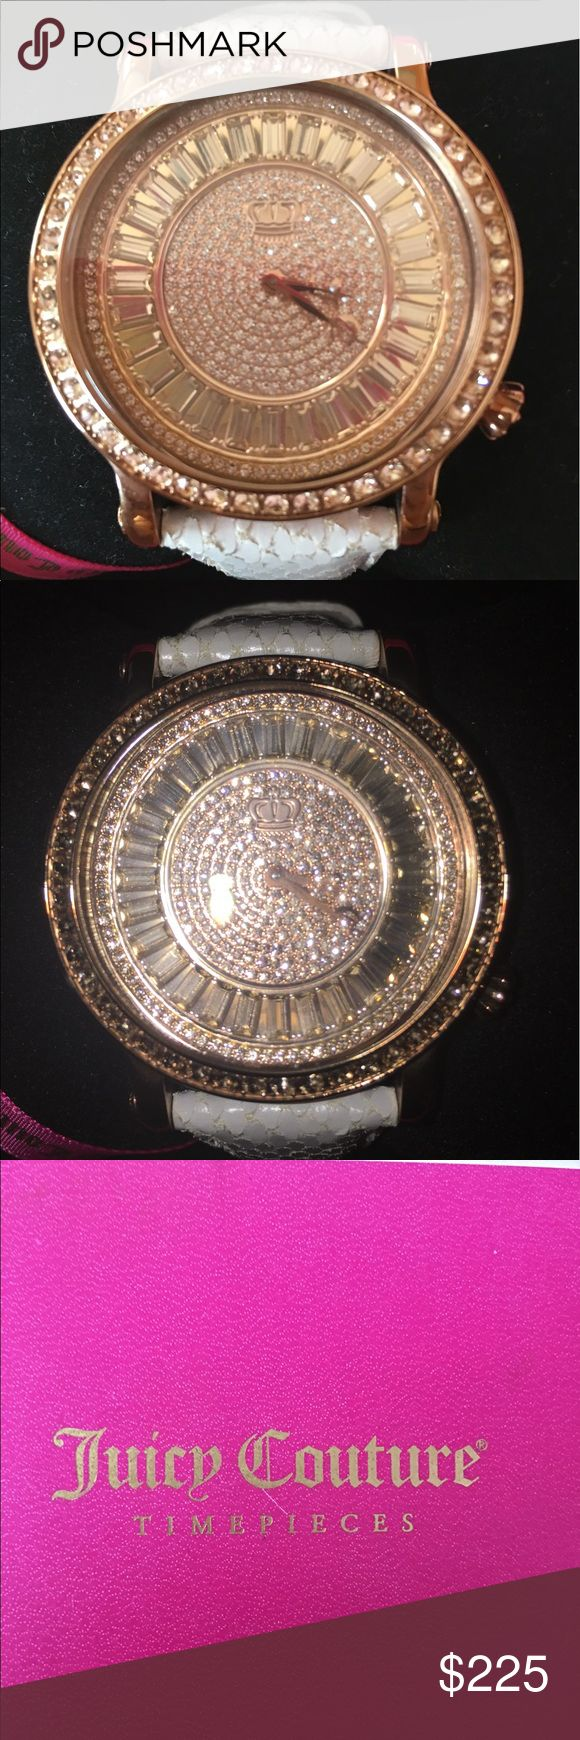 Juicy Couture Watch This is another stunning juicy Couture Pave watch that's decked out in Swarovski crystals and has a white snake band! It's only been worn once to a restaurant for an hour, in absolute pristine condition! Brand new in box! Absolutely stunning watch very Rare and hard to find Juicy Couture Accessories Watches